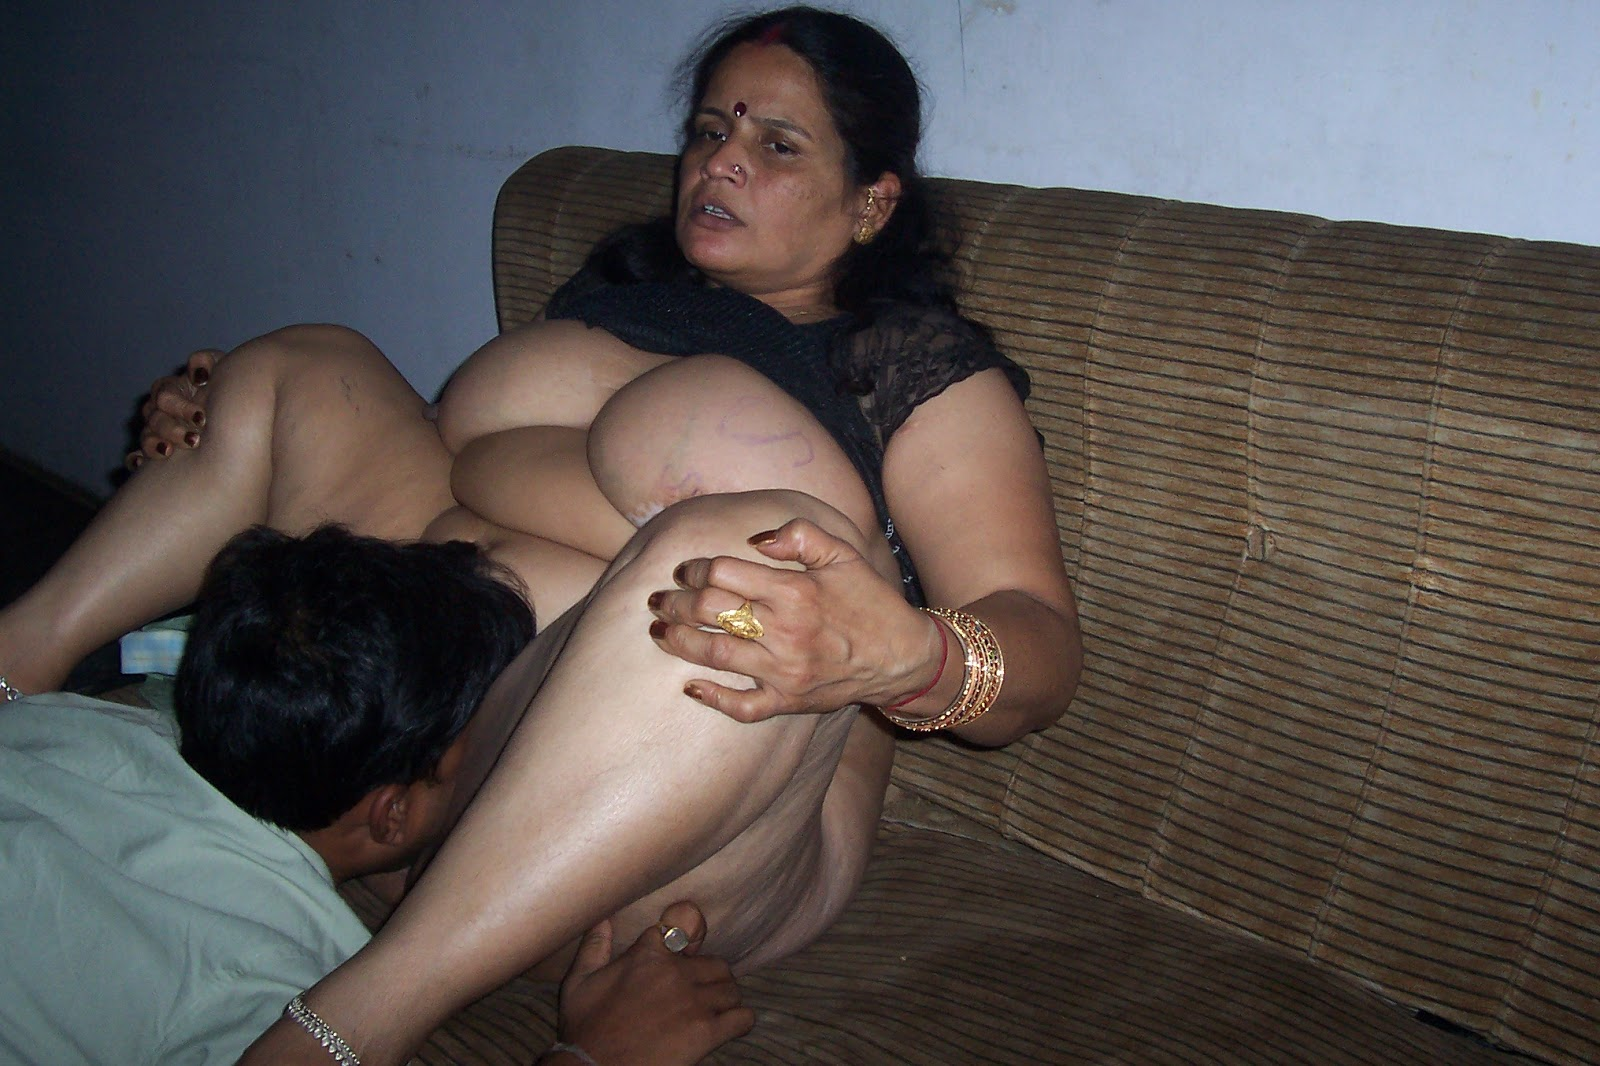 WOW,MATURE BIG UNSATISFIED AUNTY !